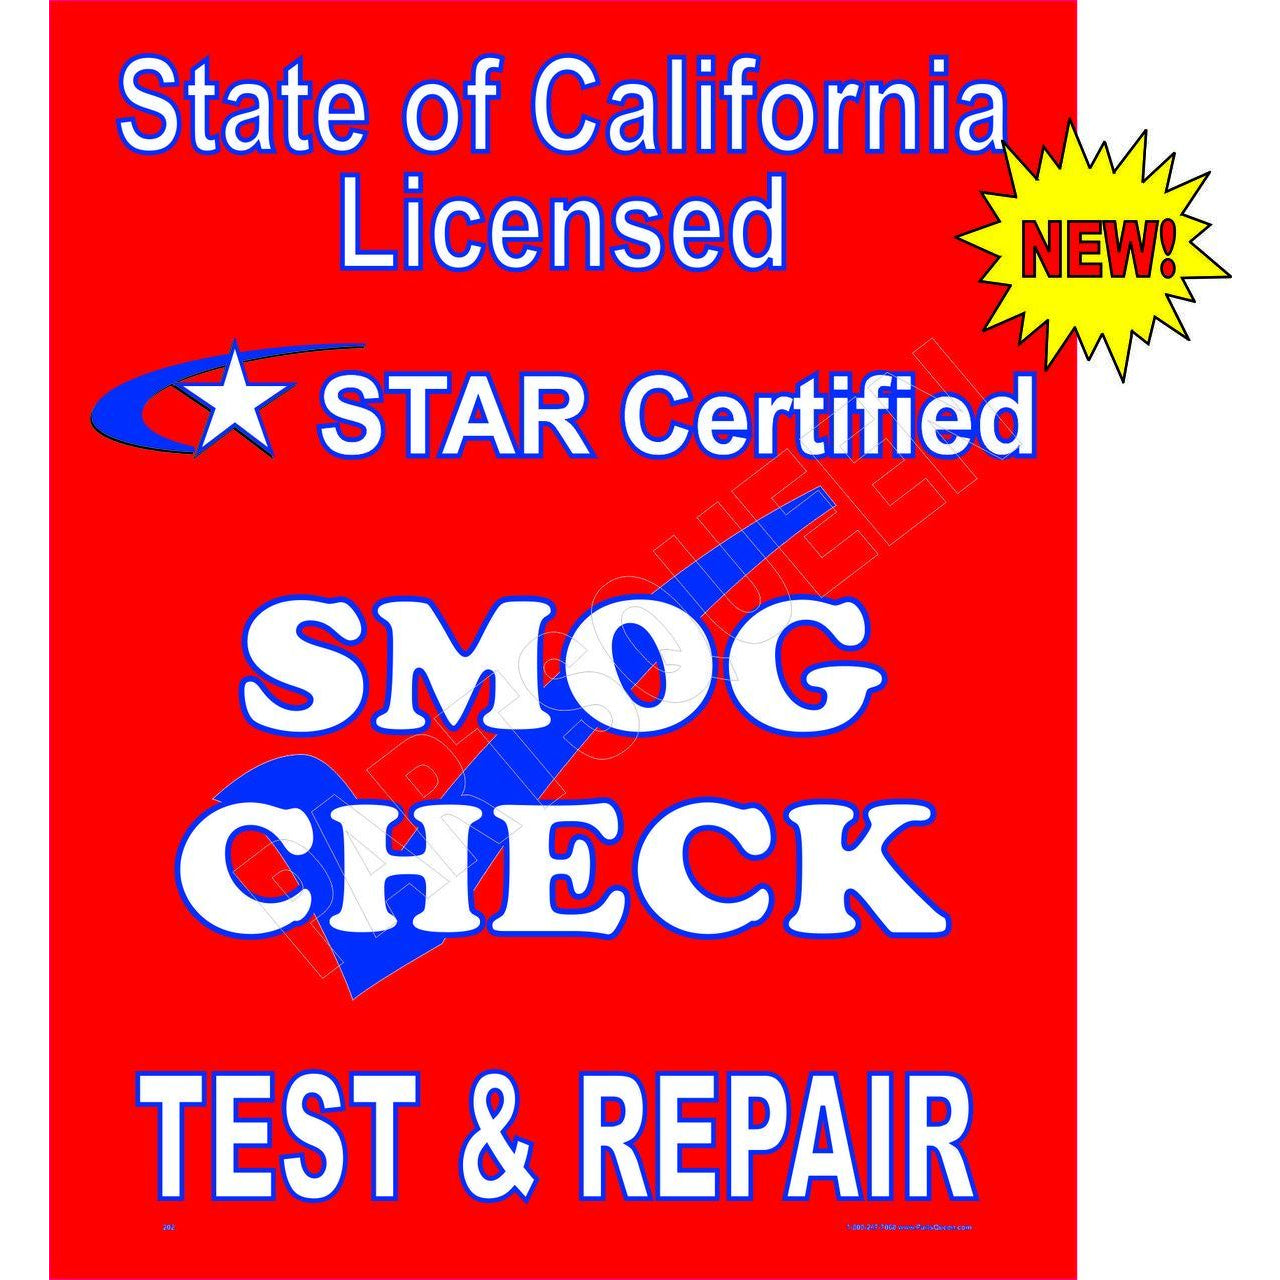 STAR CERTIFIED TEST & REPAIR SHIELD # DS-202